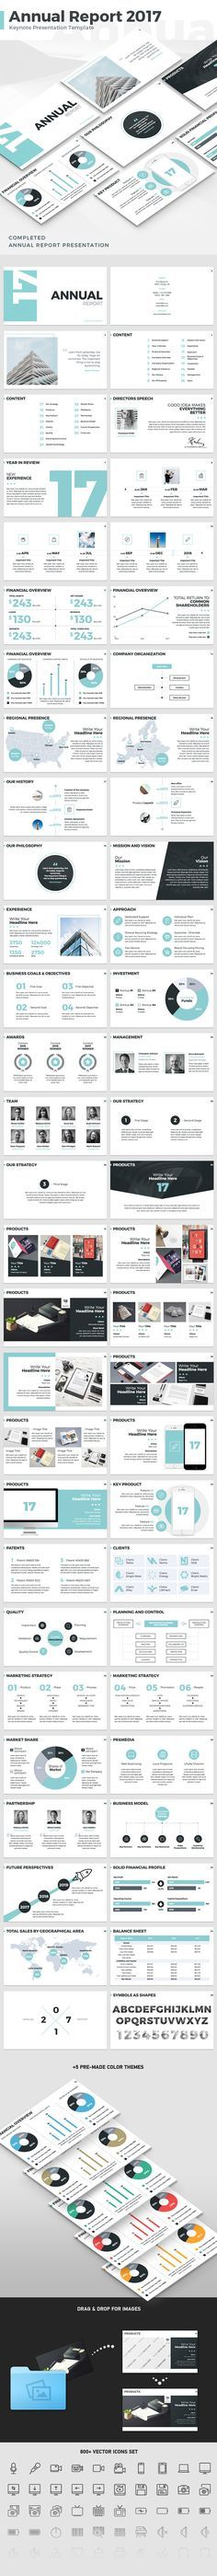 21 best ppt images on Pinterest Page layout, Graph design and - company annual report sample